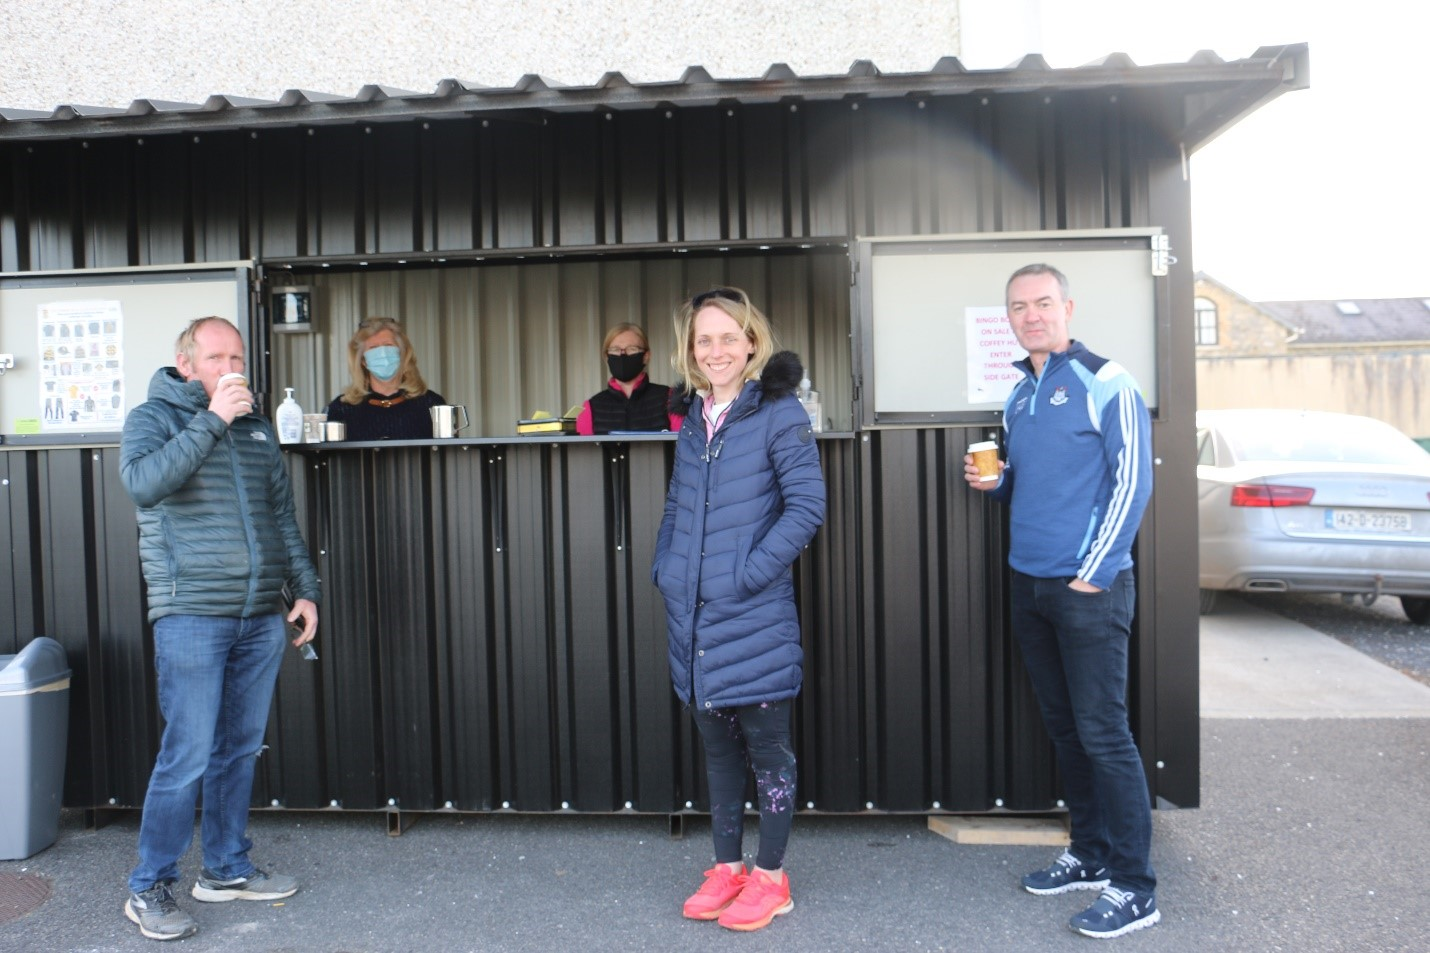 Volunteers Laurie D'Arcy and Marie Carroll on duty at The Downs GAA Cuppa Hut Open Every Friday Evening between 6.30p.m and 7.30p.m.